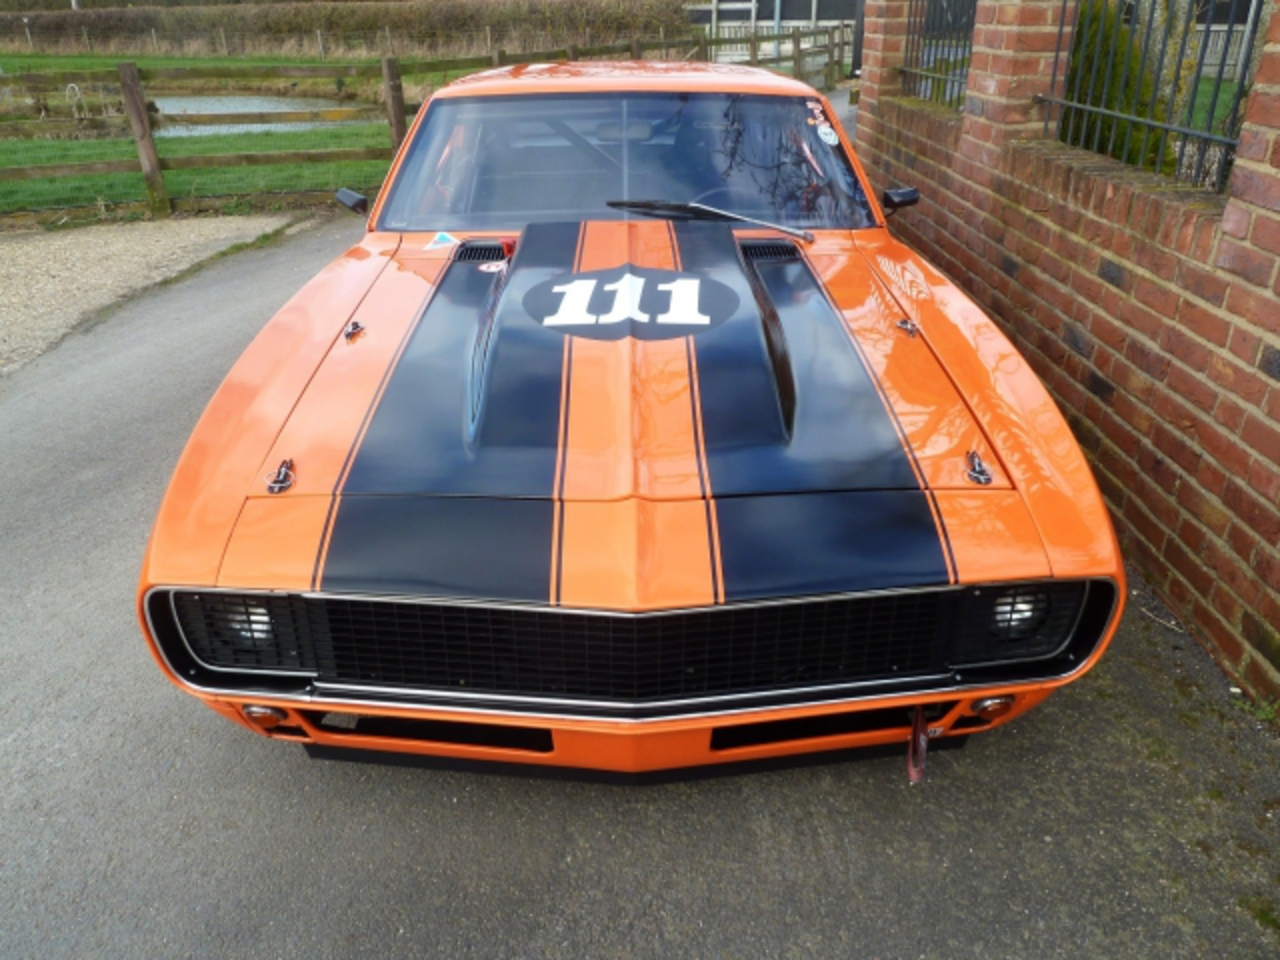 1967 Chevrolet Camaro Race Car – ICS Spec. This is a well known race car